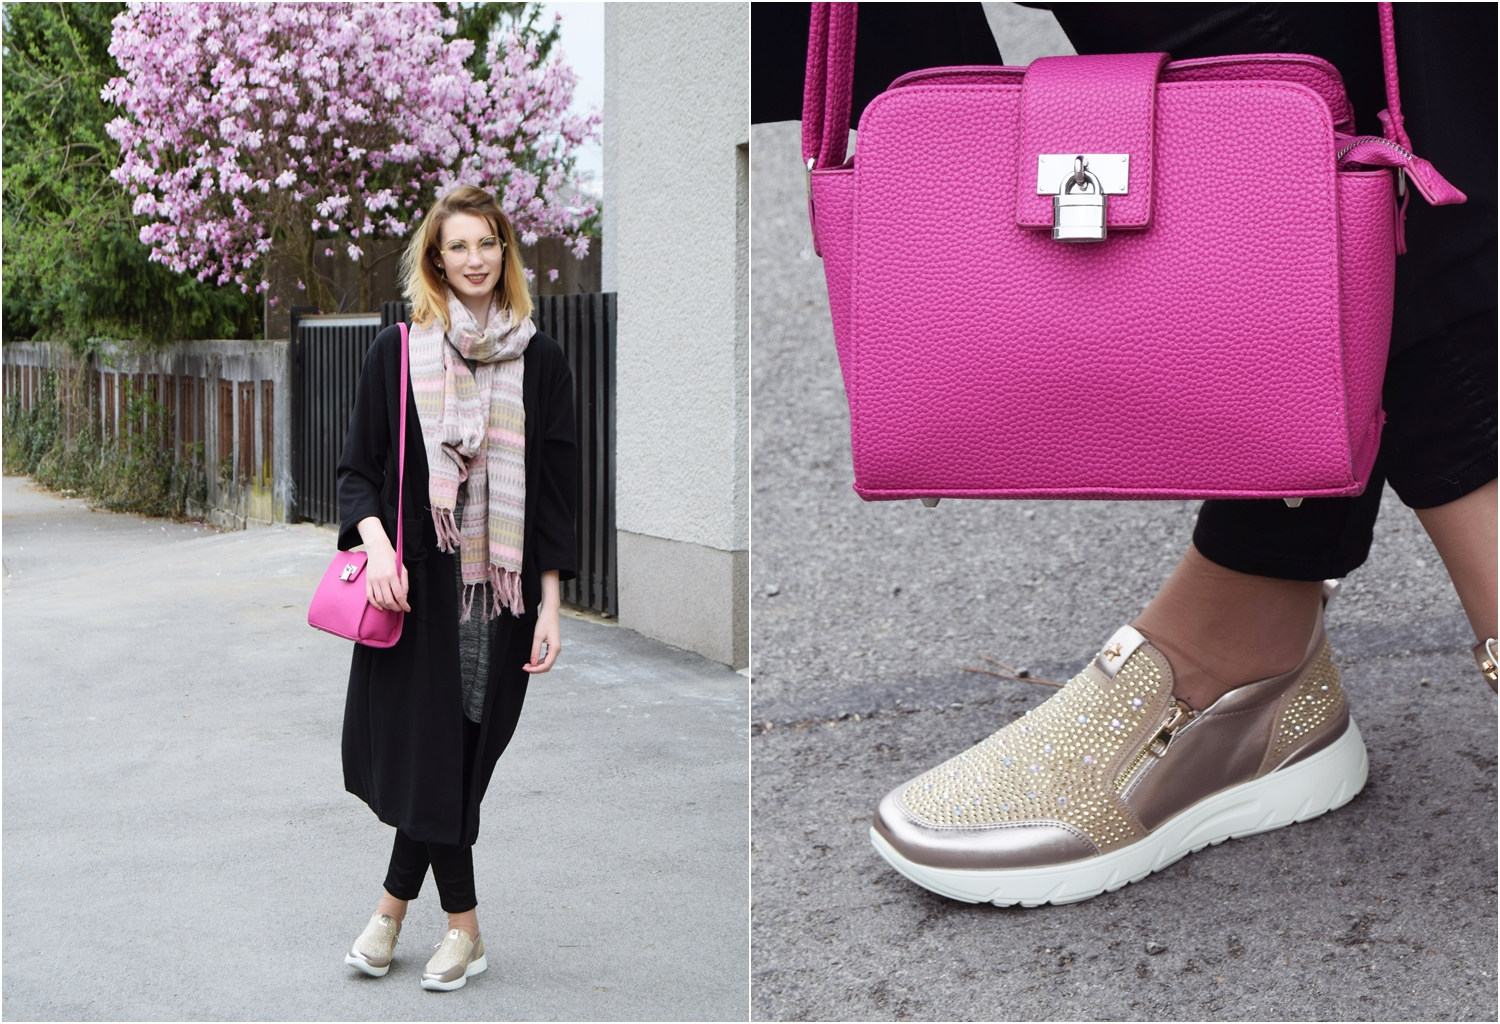 Spring_pink_magnolia_outfit_zalabell_fashion_style_7